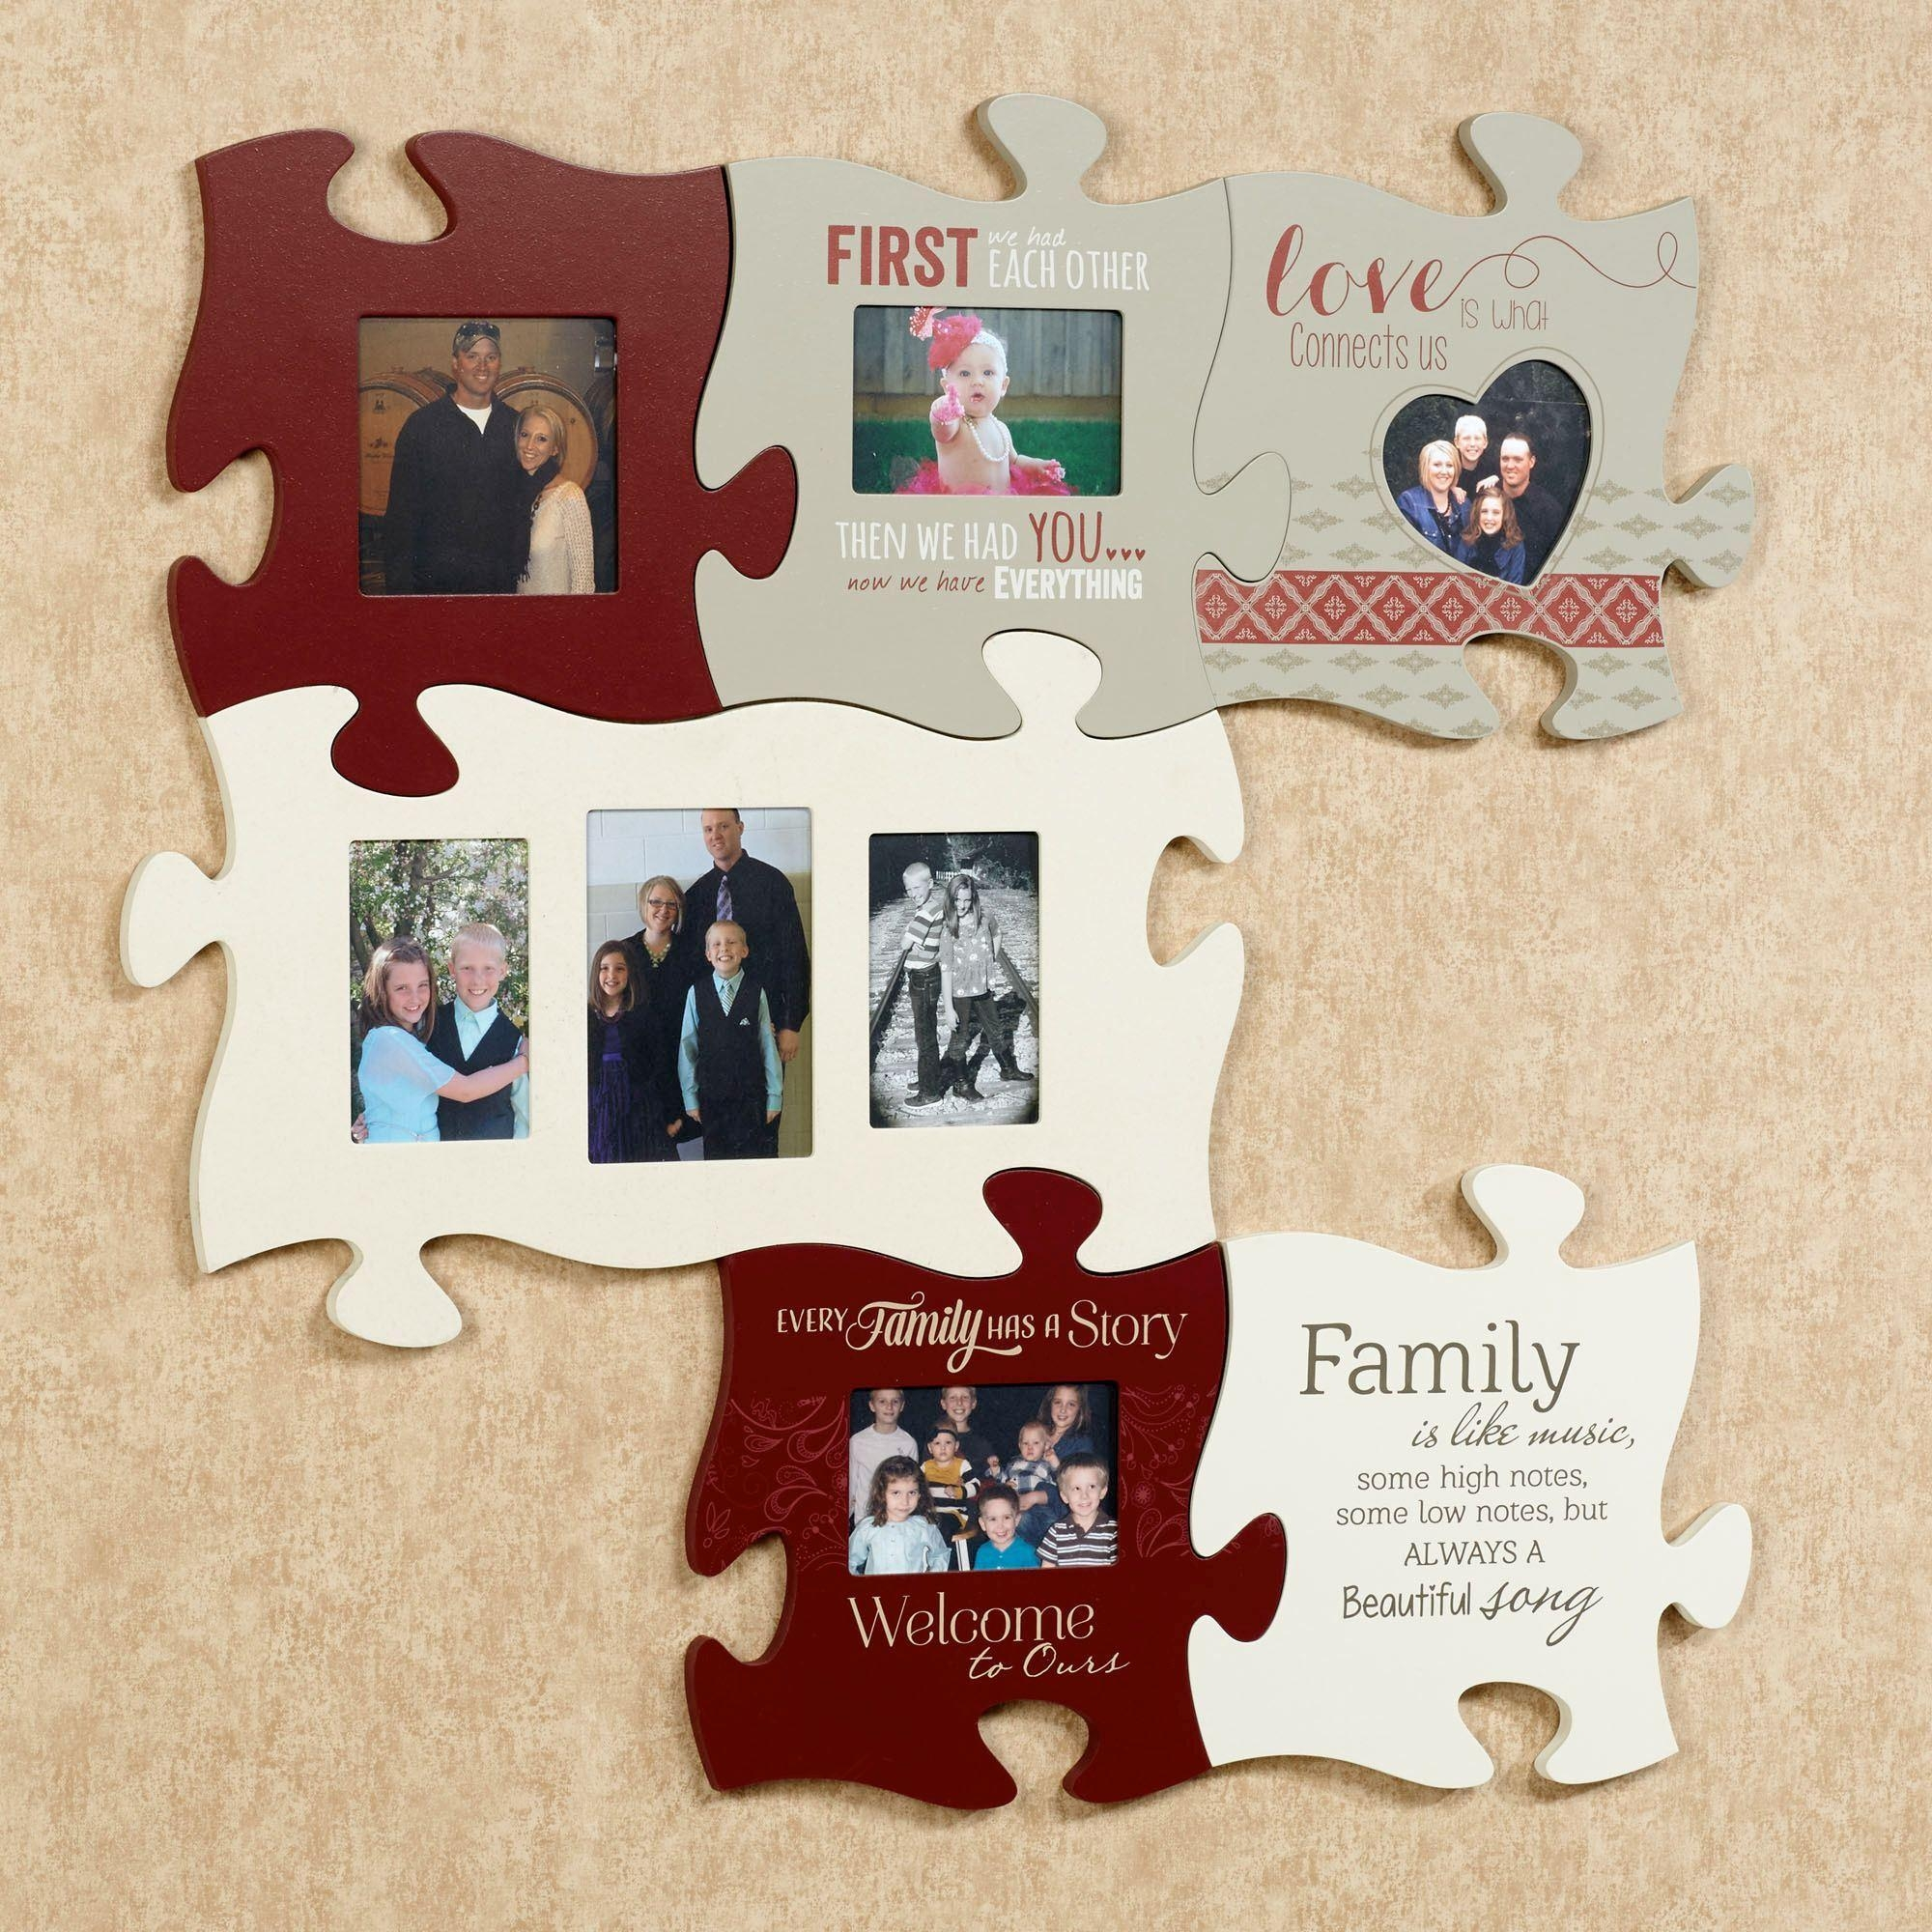 Every Family Photo Frame Puzzle Piece Wall Art Inside Family Wall Art Picture Frames (Image 8 of 20)